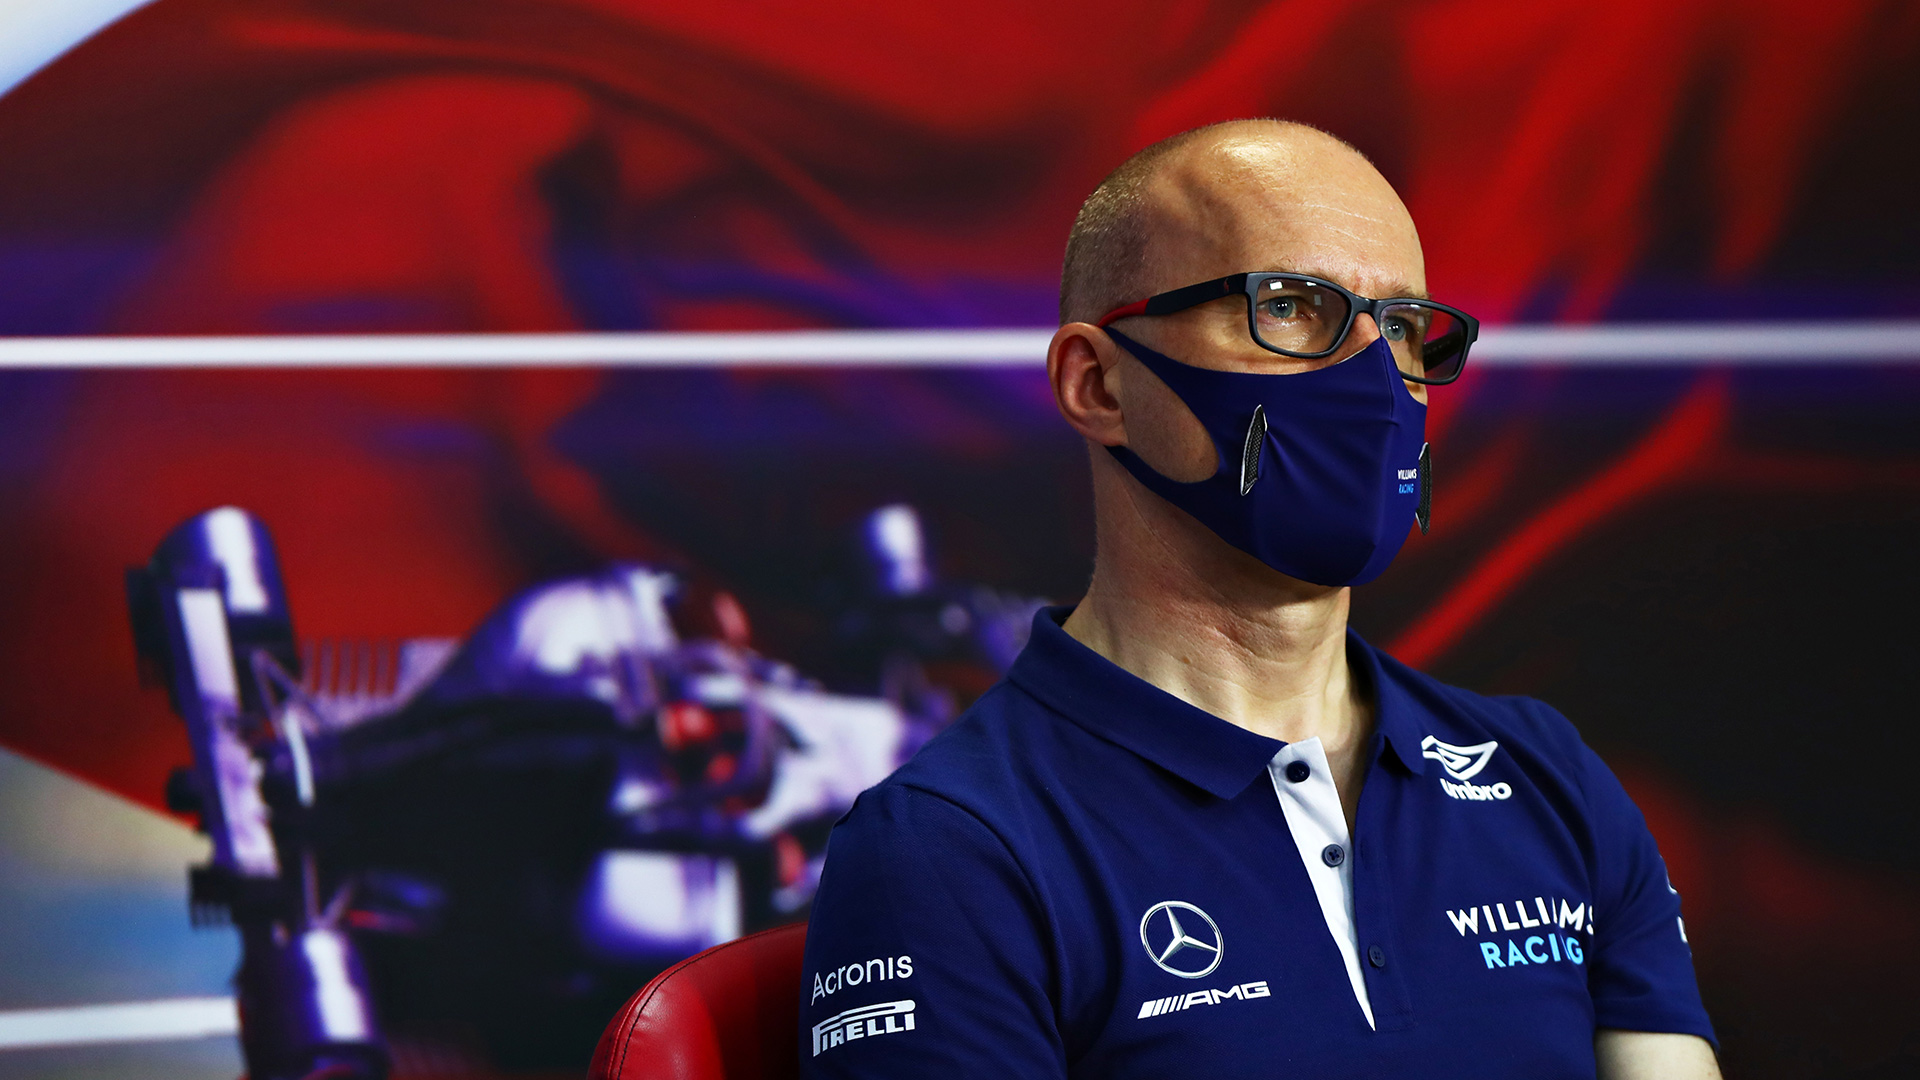 Simon Roberts to leave Williams, with CEO Jost Capito taking on Team Principal role   Formula 1®